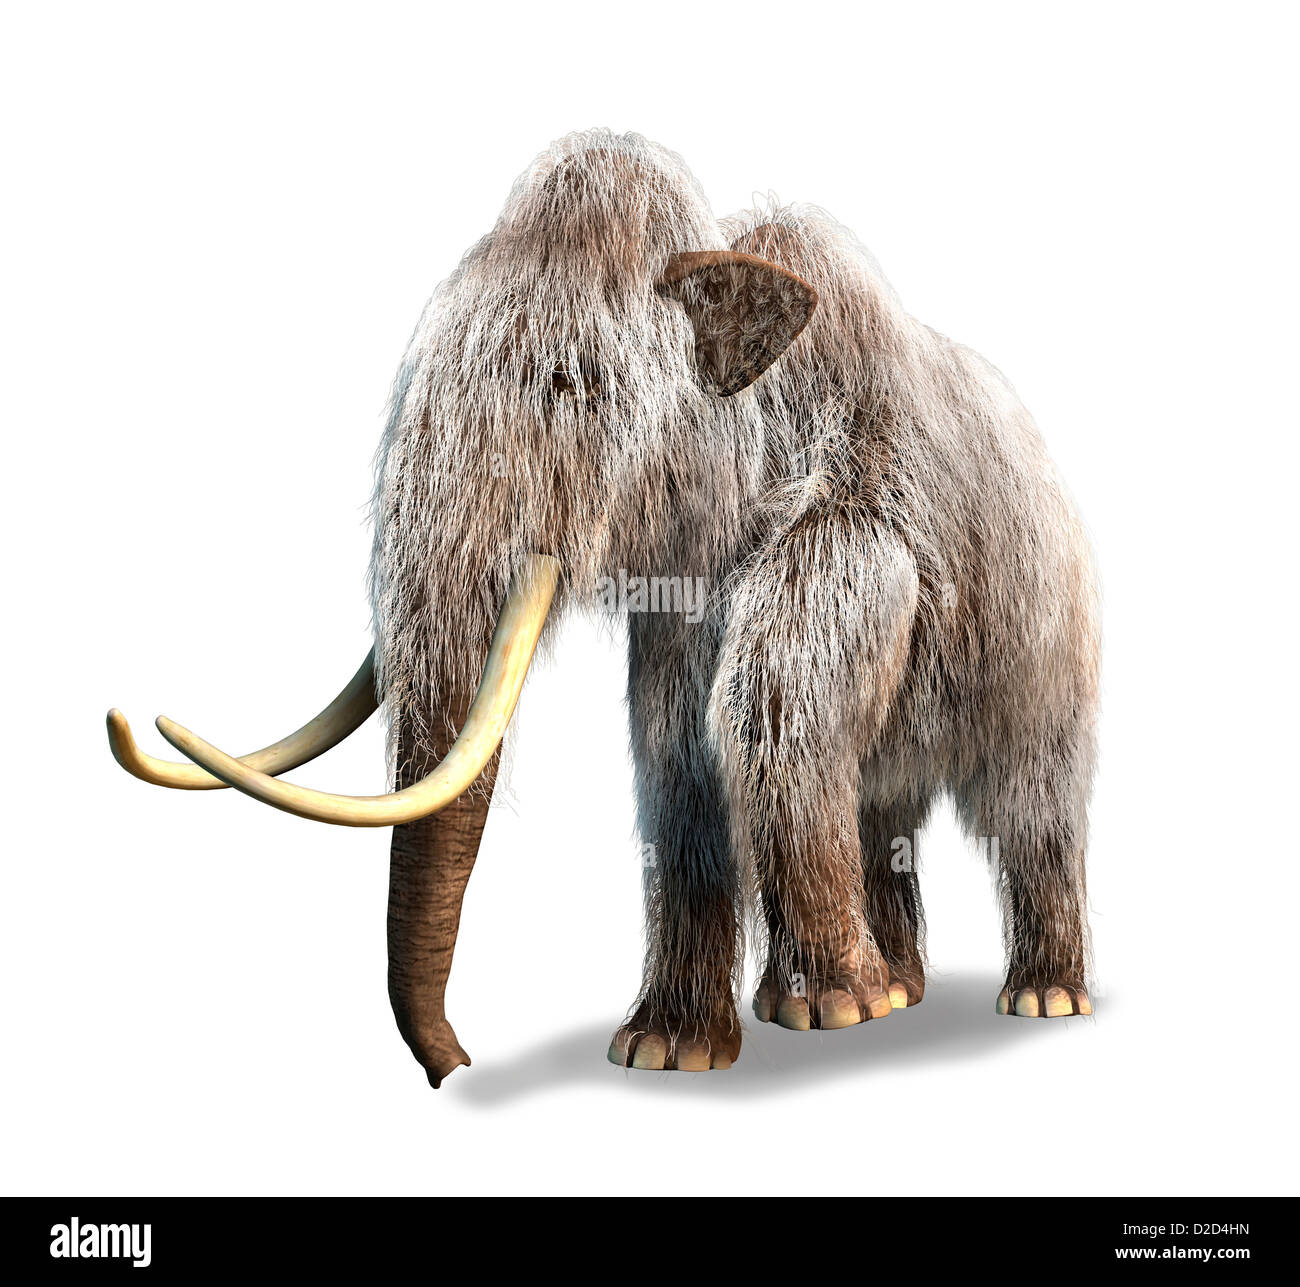 Woolly mammoth Mammuthus primigenius computer artwork - Stock Image